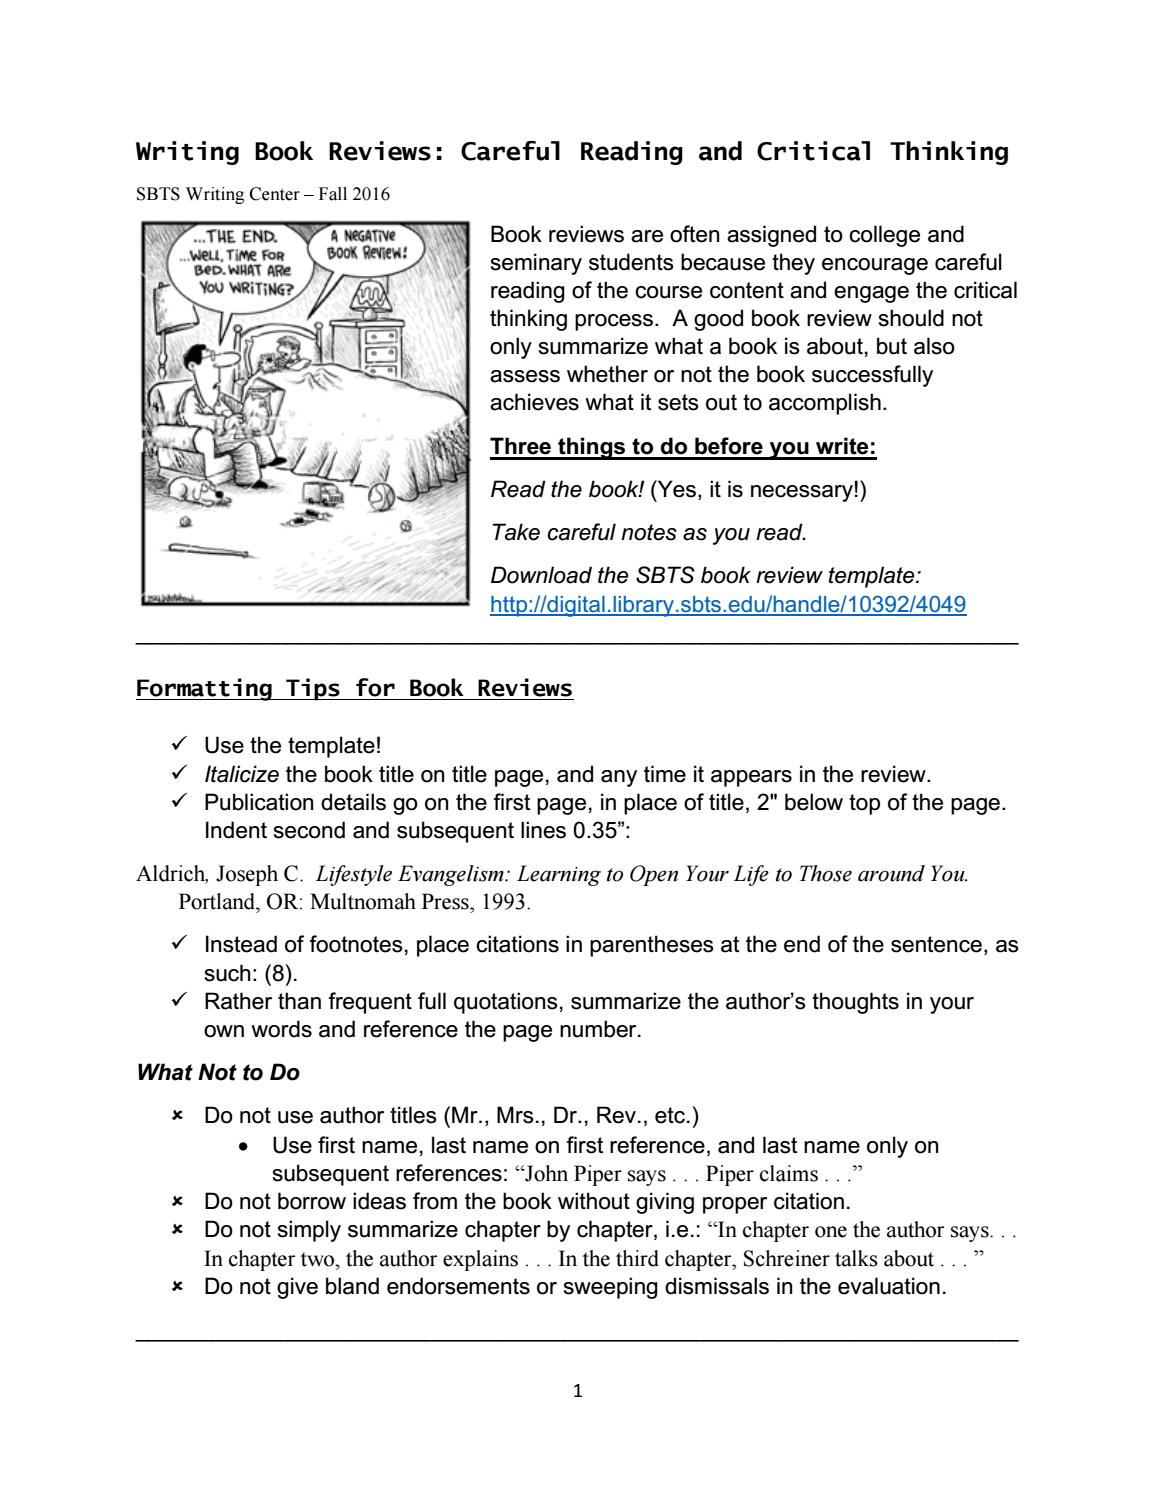 Book review hints 1 by SBTS Writing Center - issuu